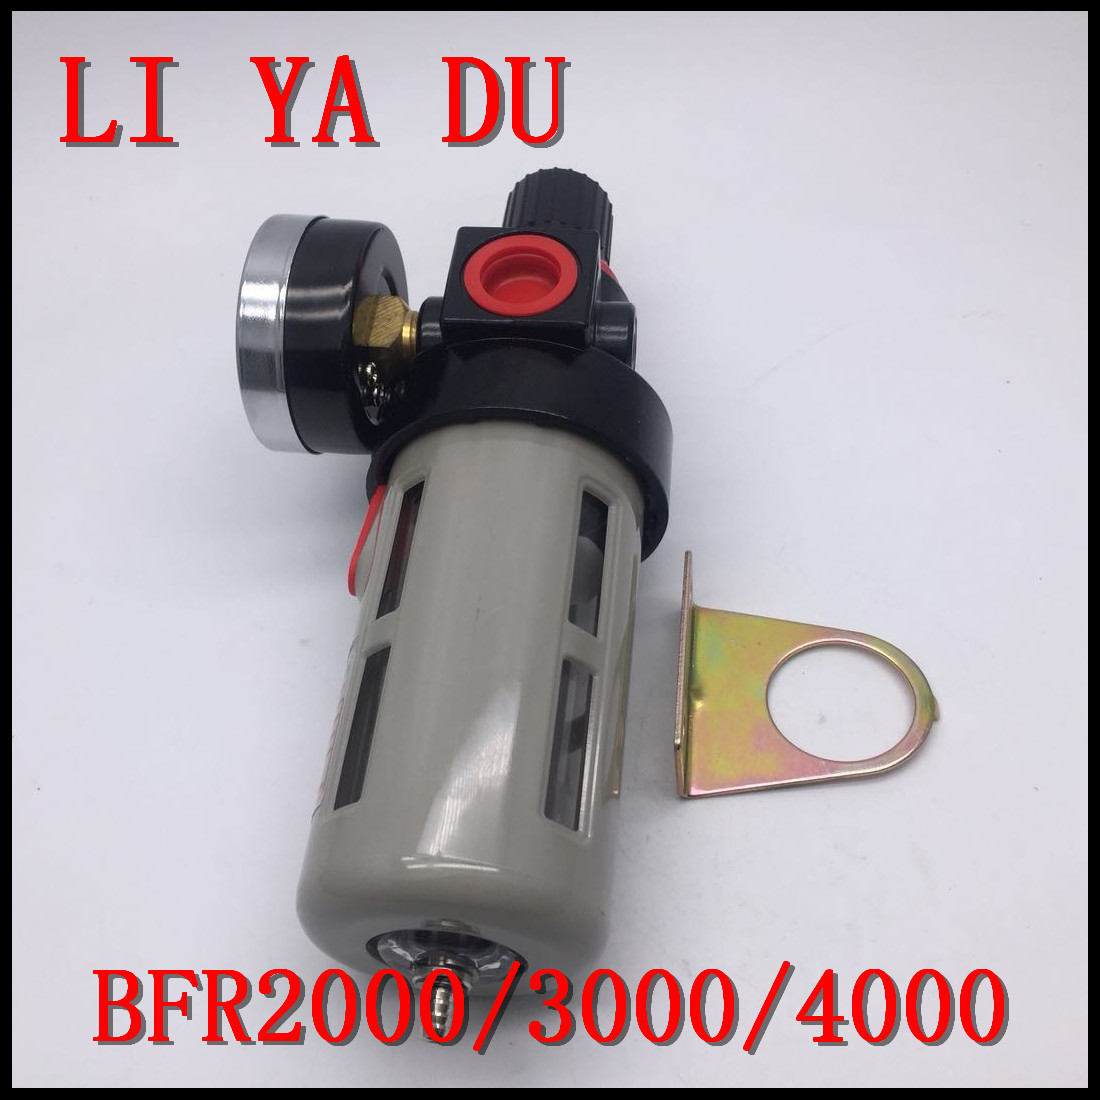 2PCS/LOT BFR2000 <font><b>BFR3000</b></font> BFR4000 Air pump filter pressure reducing valve Oil-water separator BFR-3000 BFR-4000 image